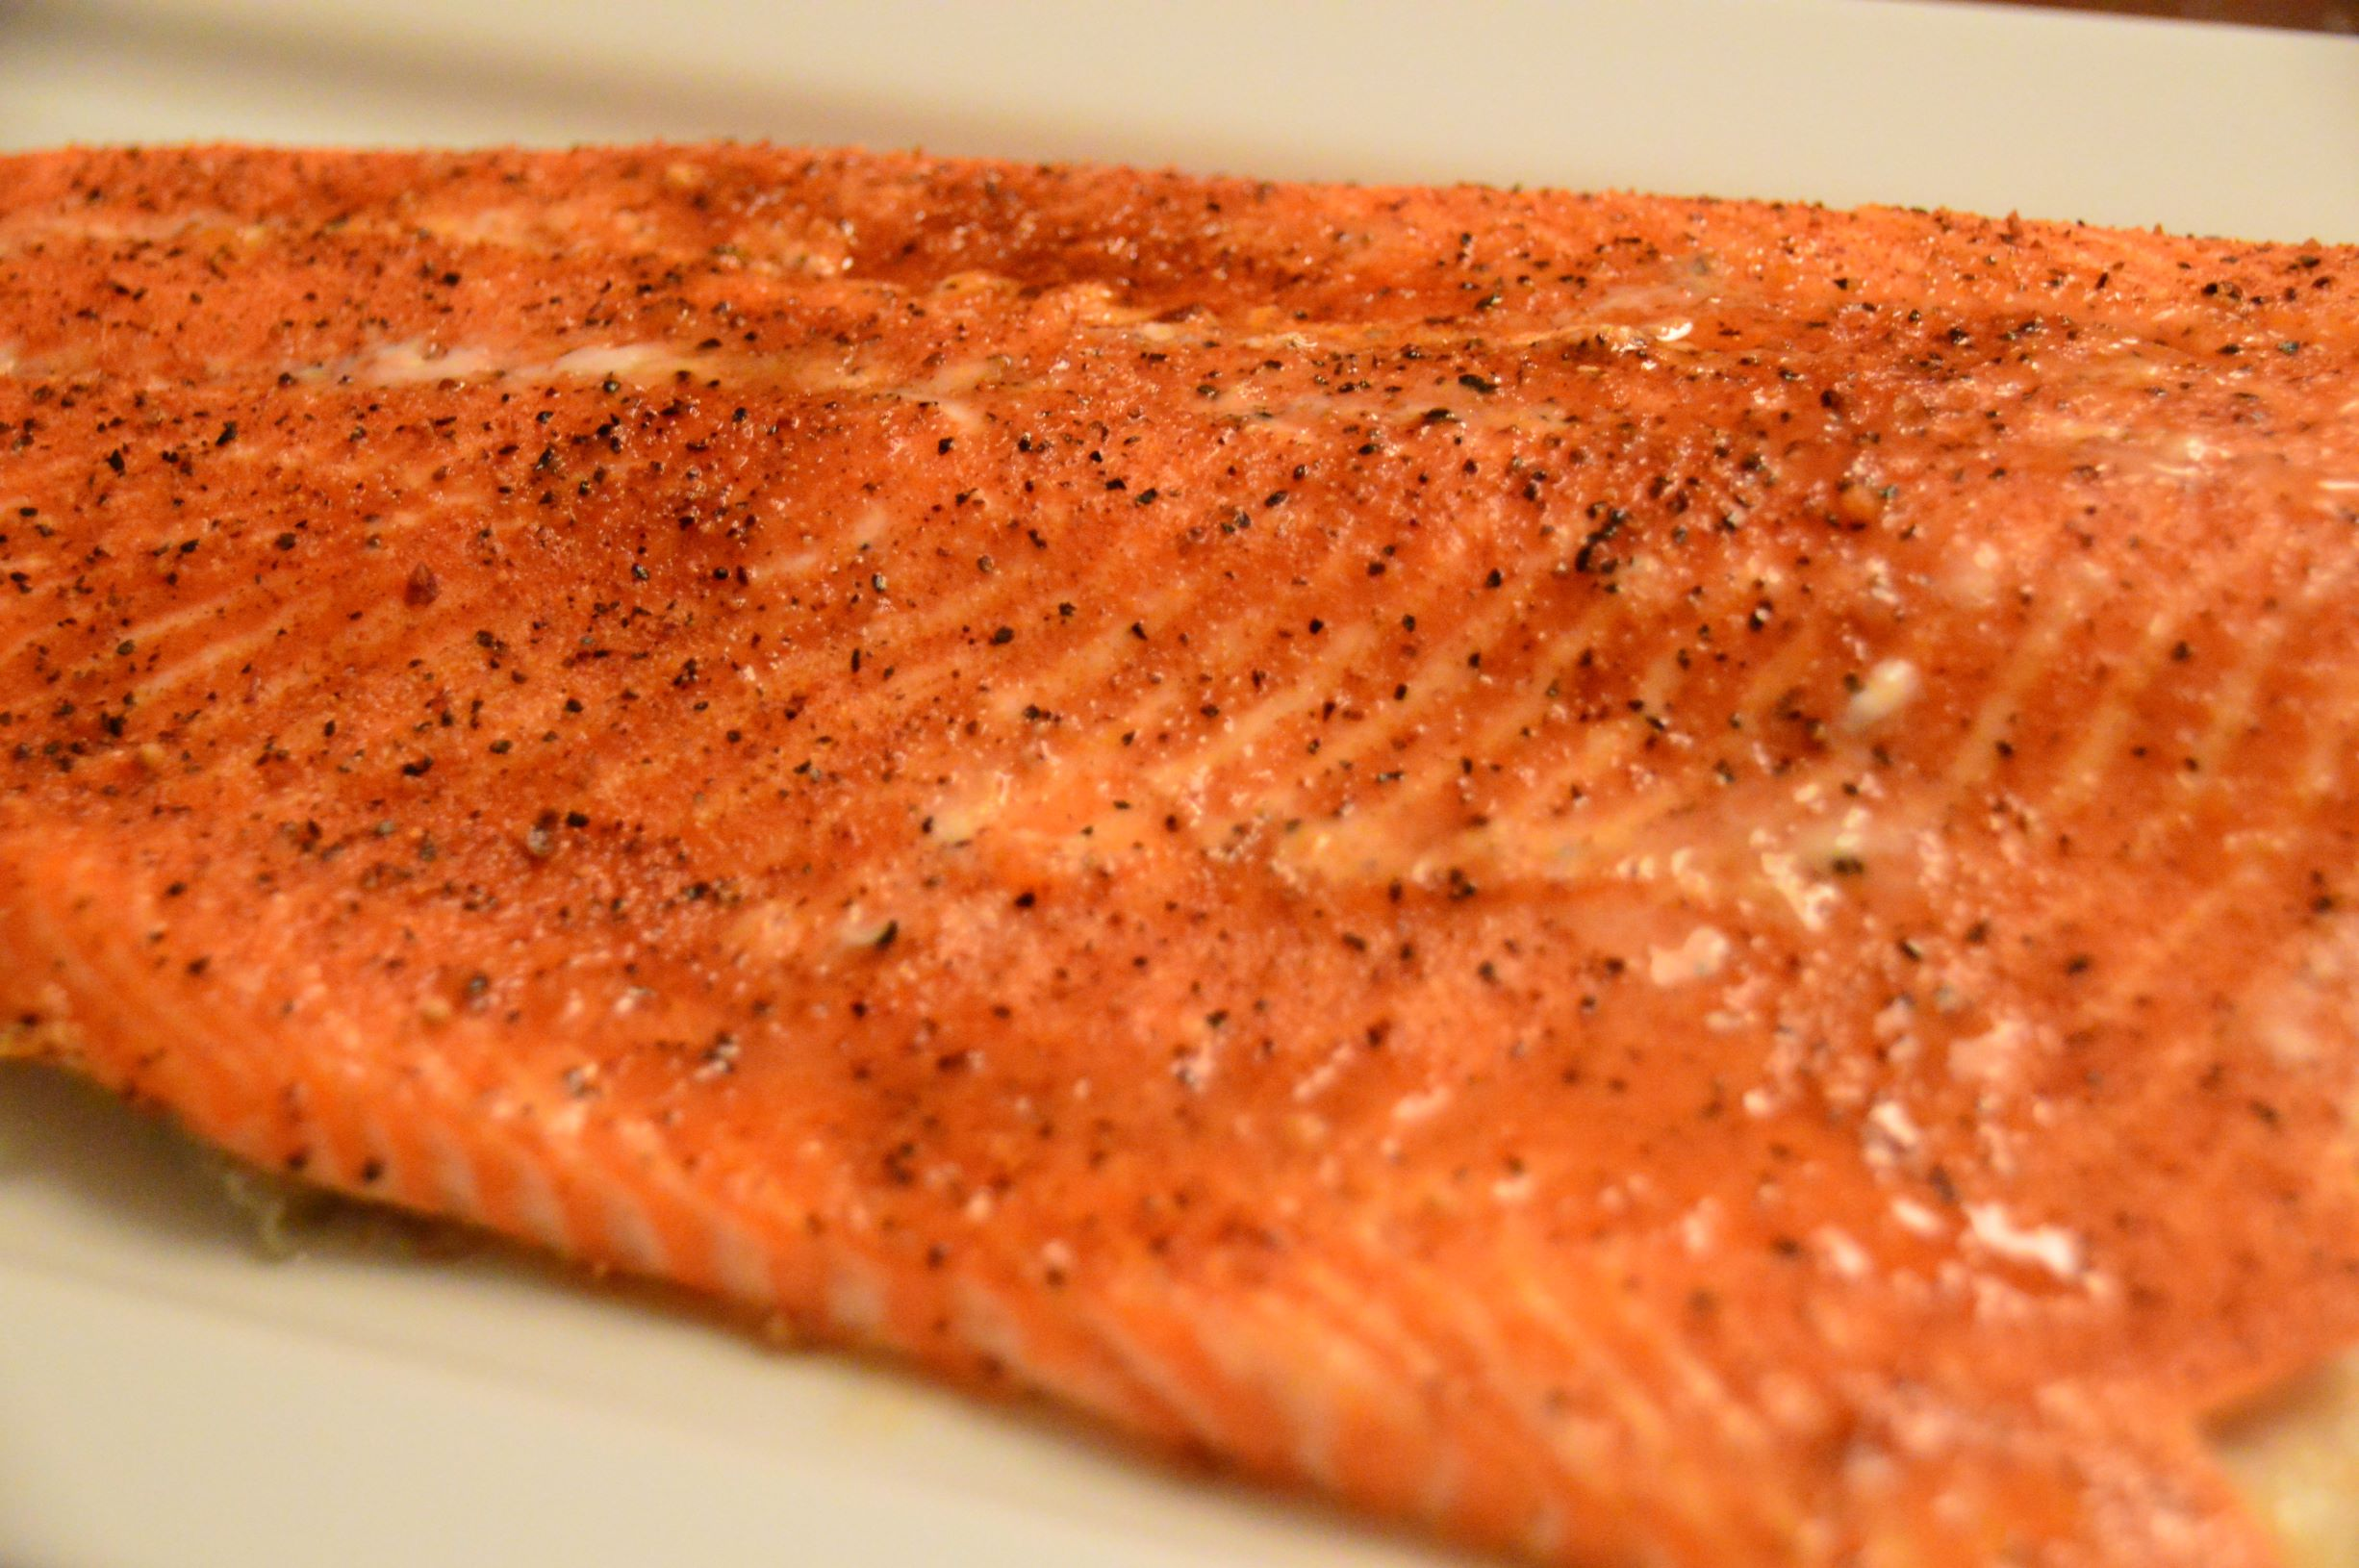 Step by Step Picture Instructions – Gently Cook Fish on a Grill or Smoker